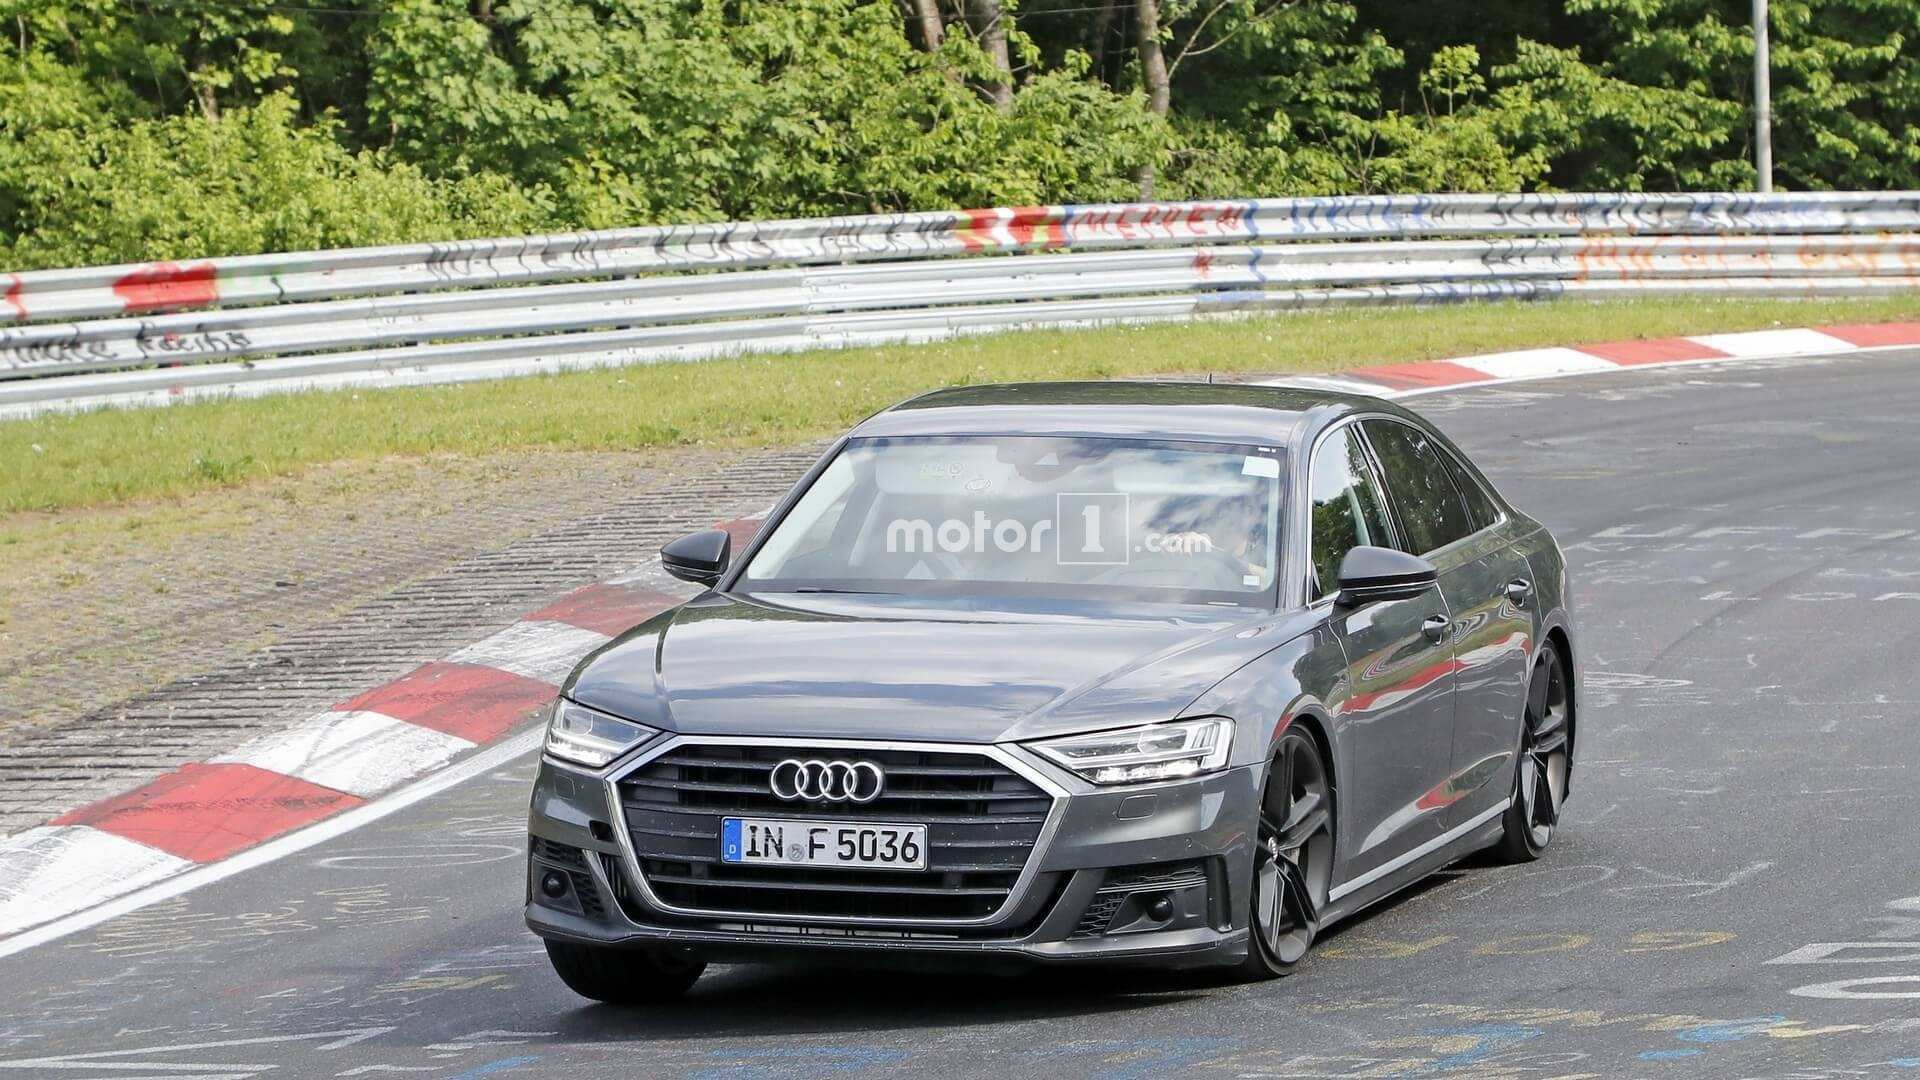 83 The S8 Audi 2019 Engine Redesign and Concept with S8 Audi 2019 Engine